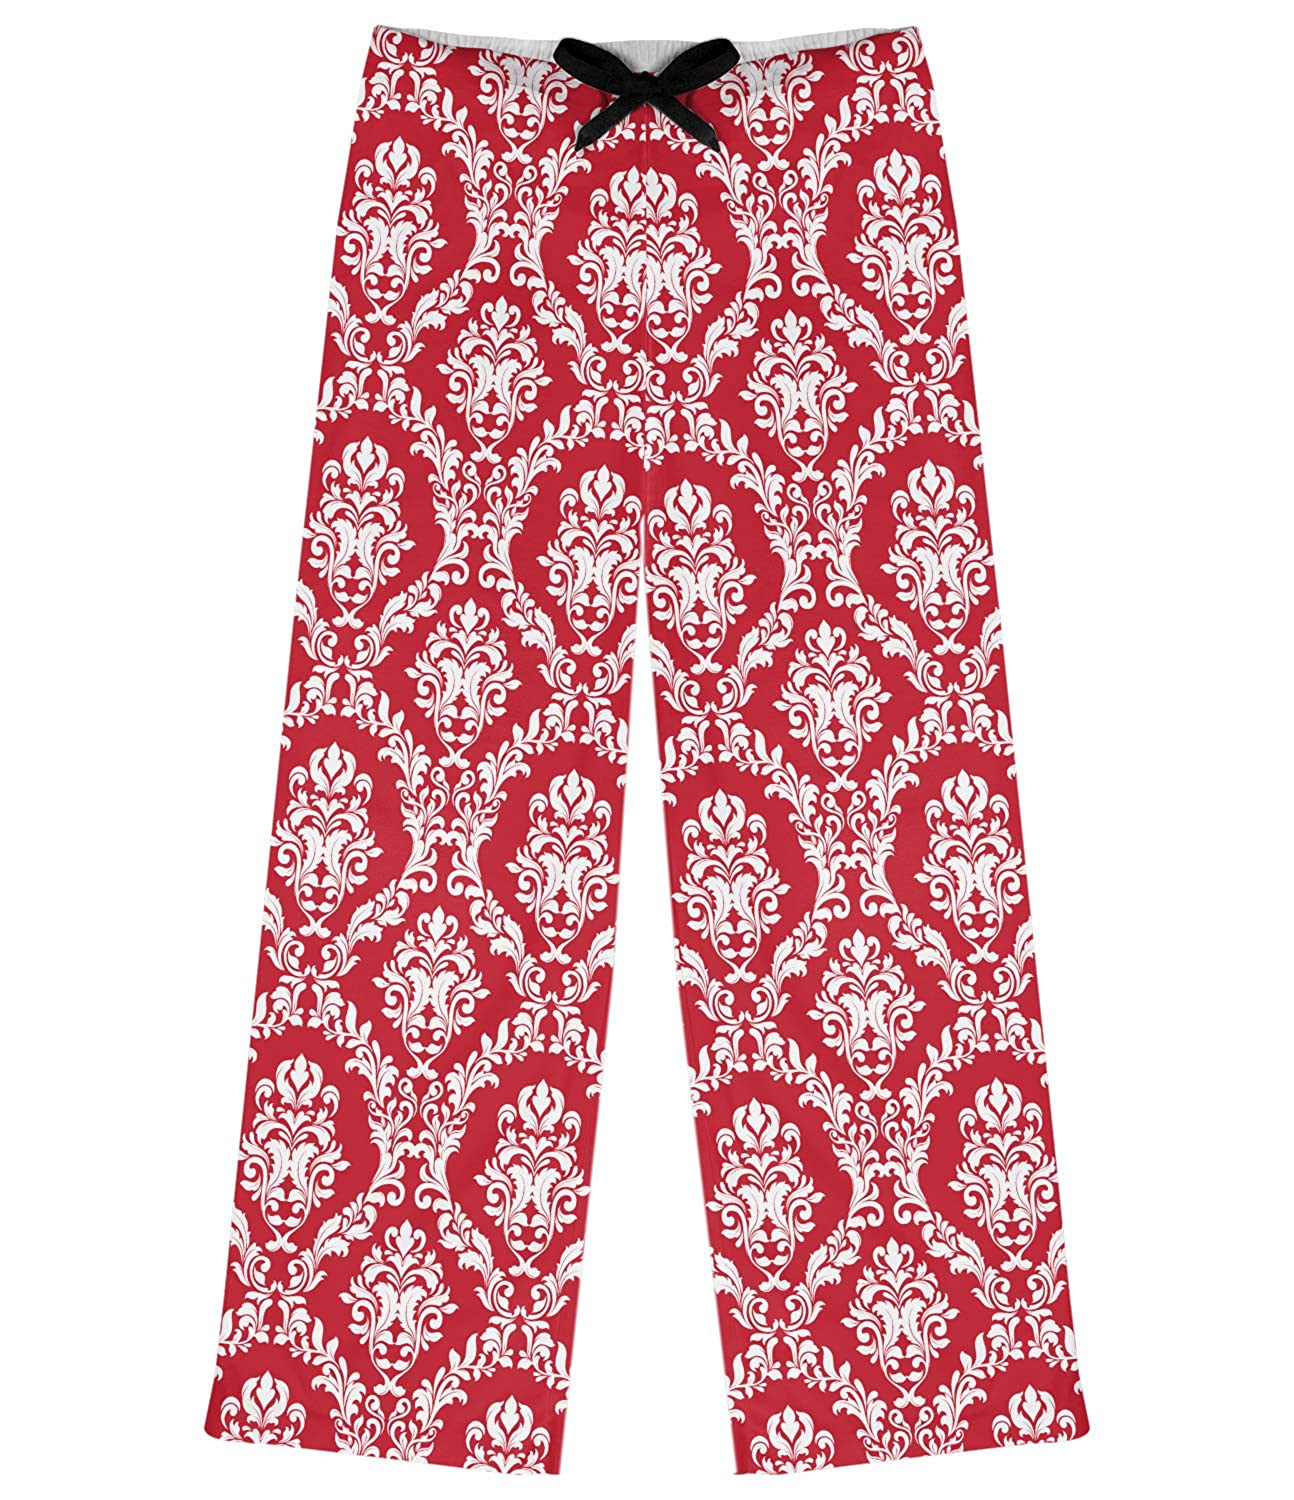 RNK Shops Damask Womens Pajama Pants Personalized red XL